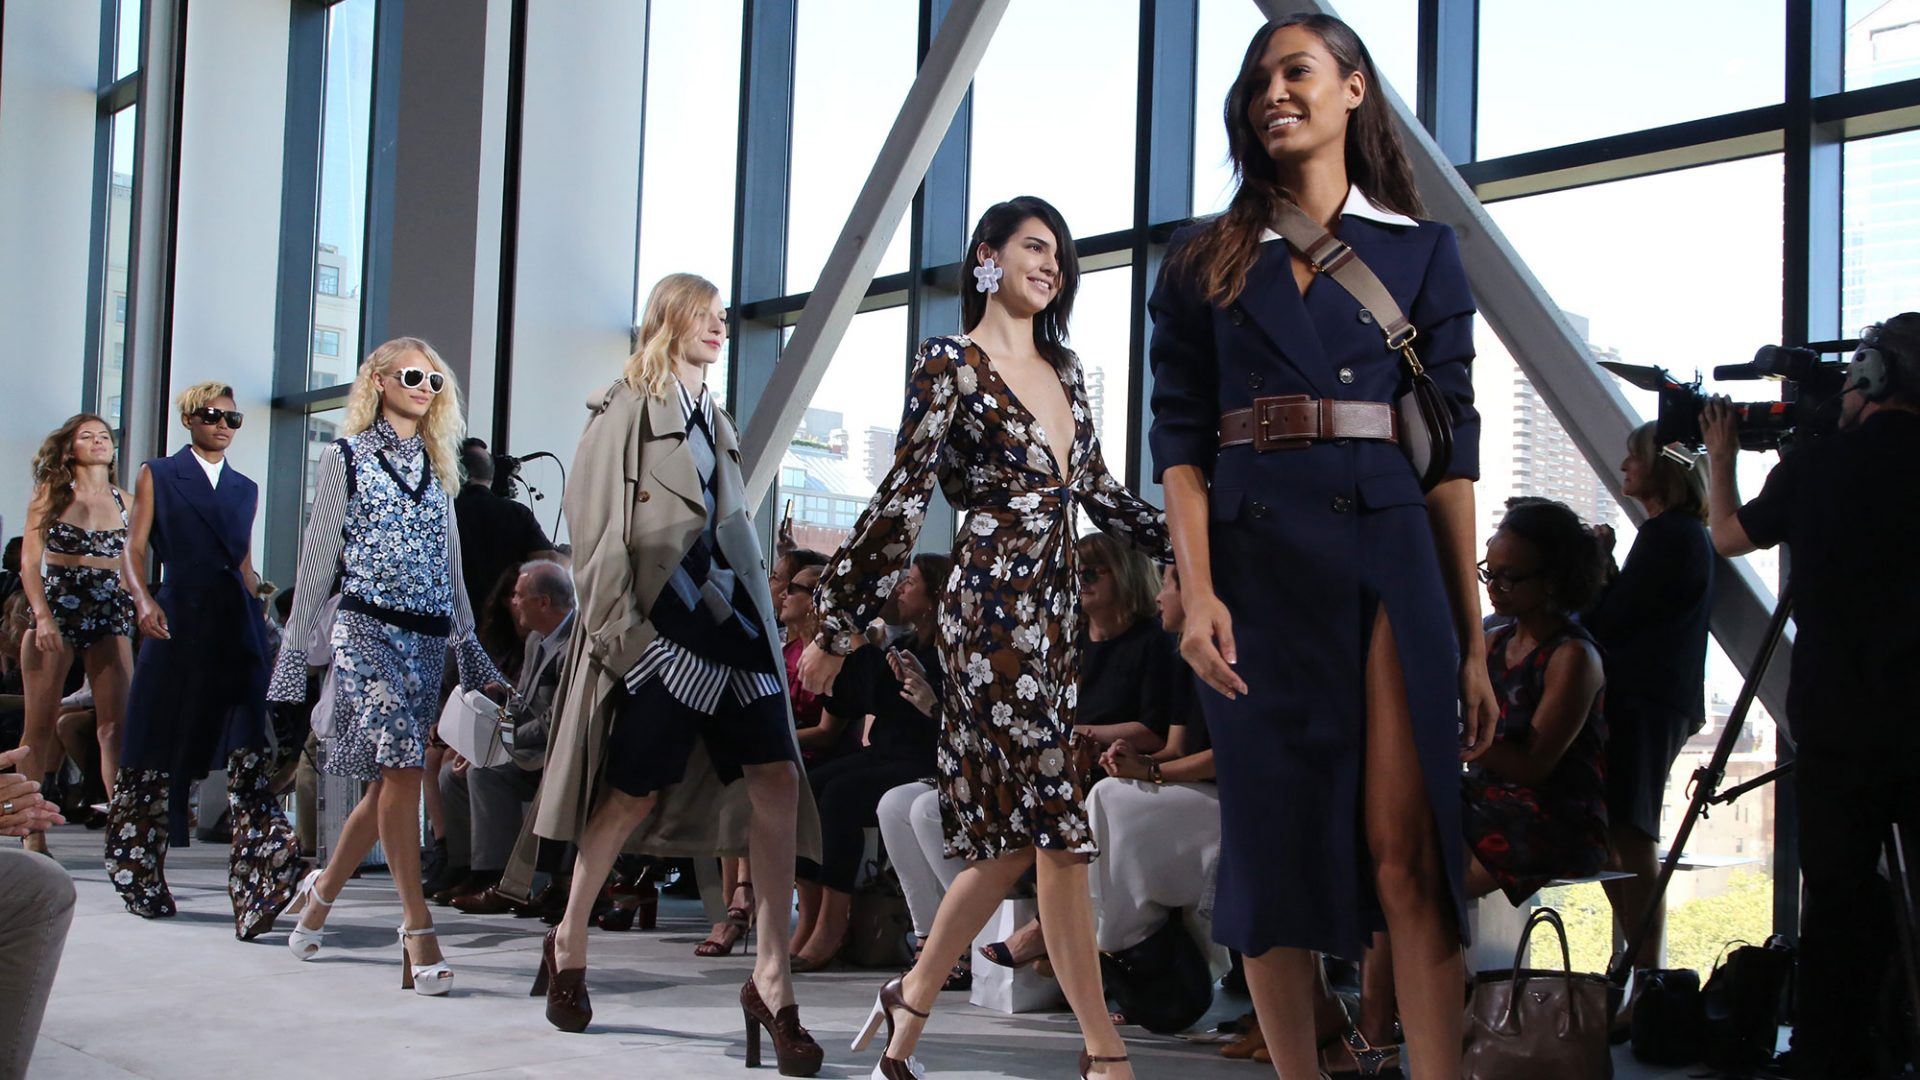 Watch The Michael Kors Show Live From New York Fashion Week 2017